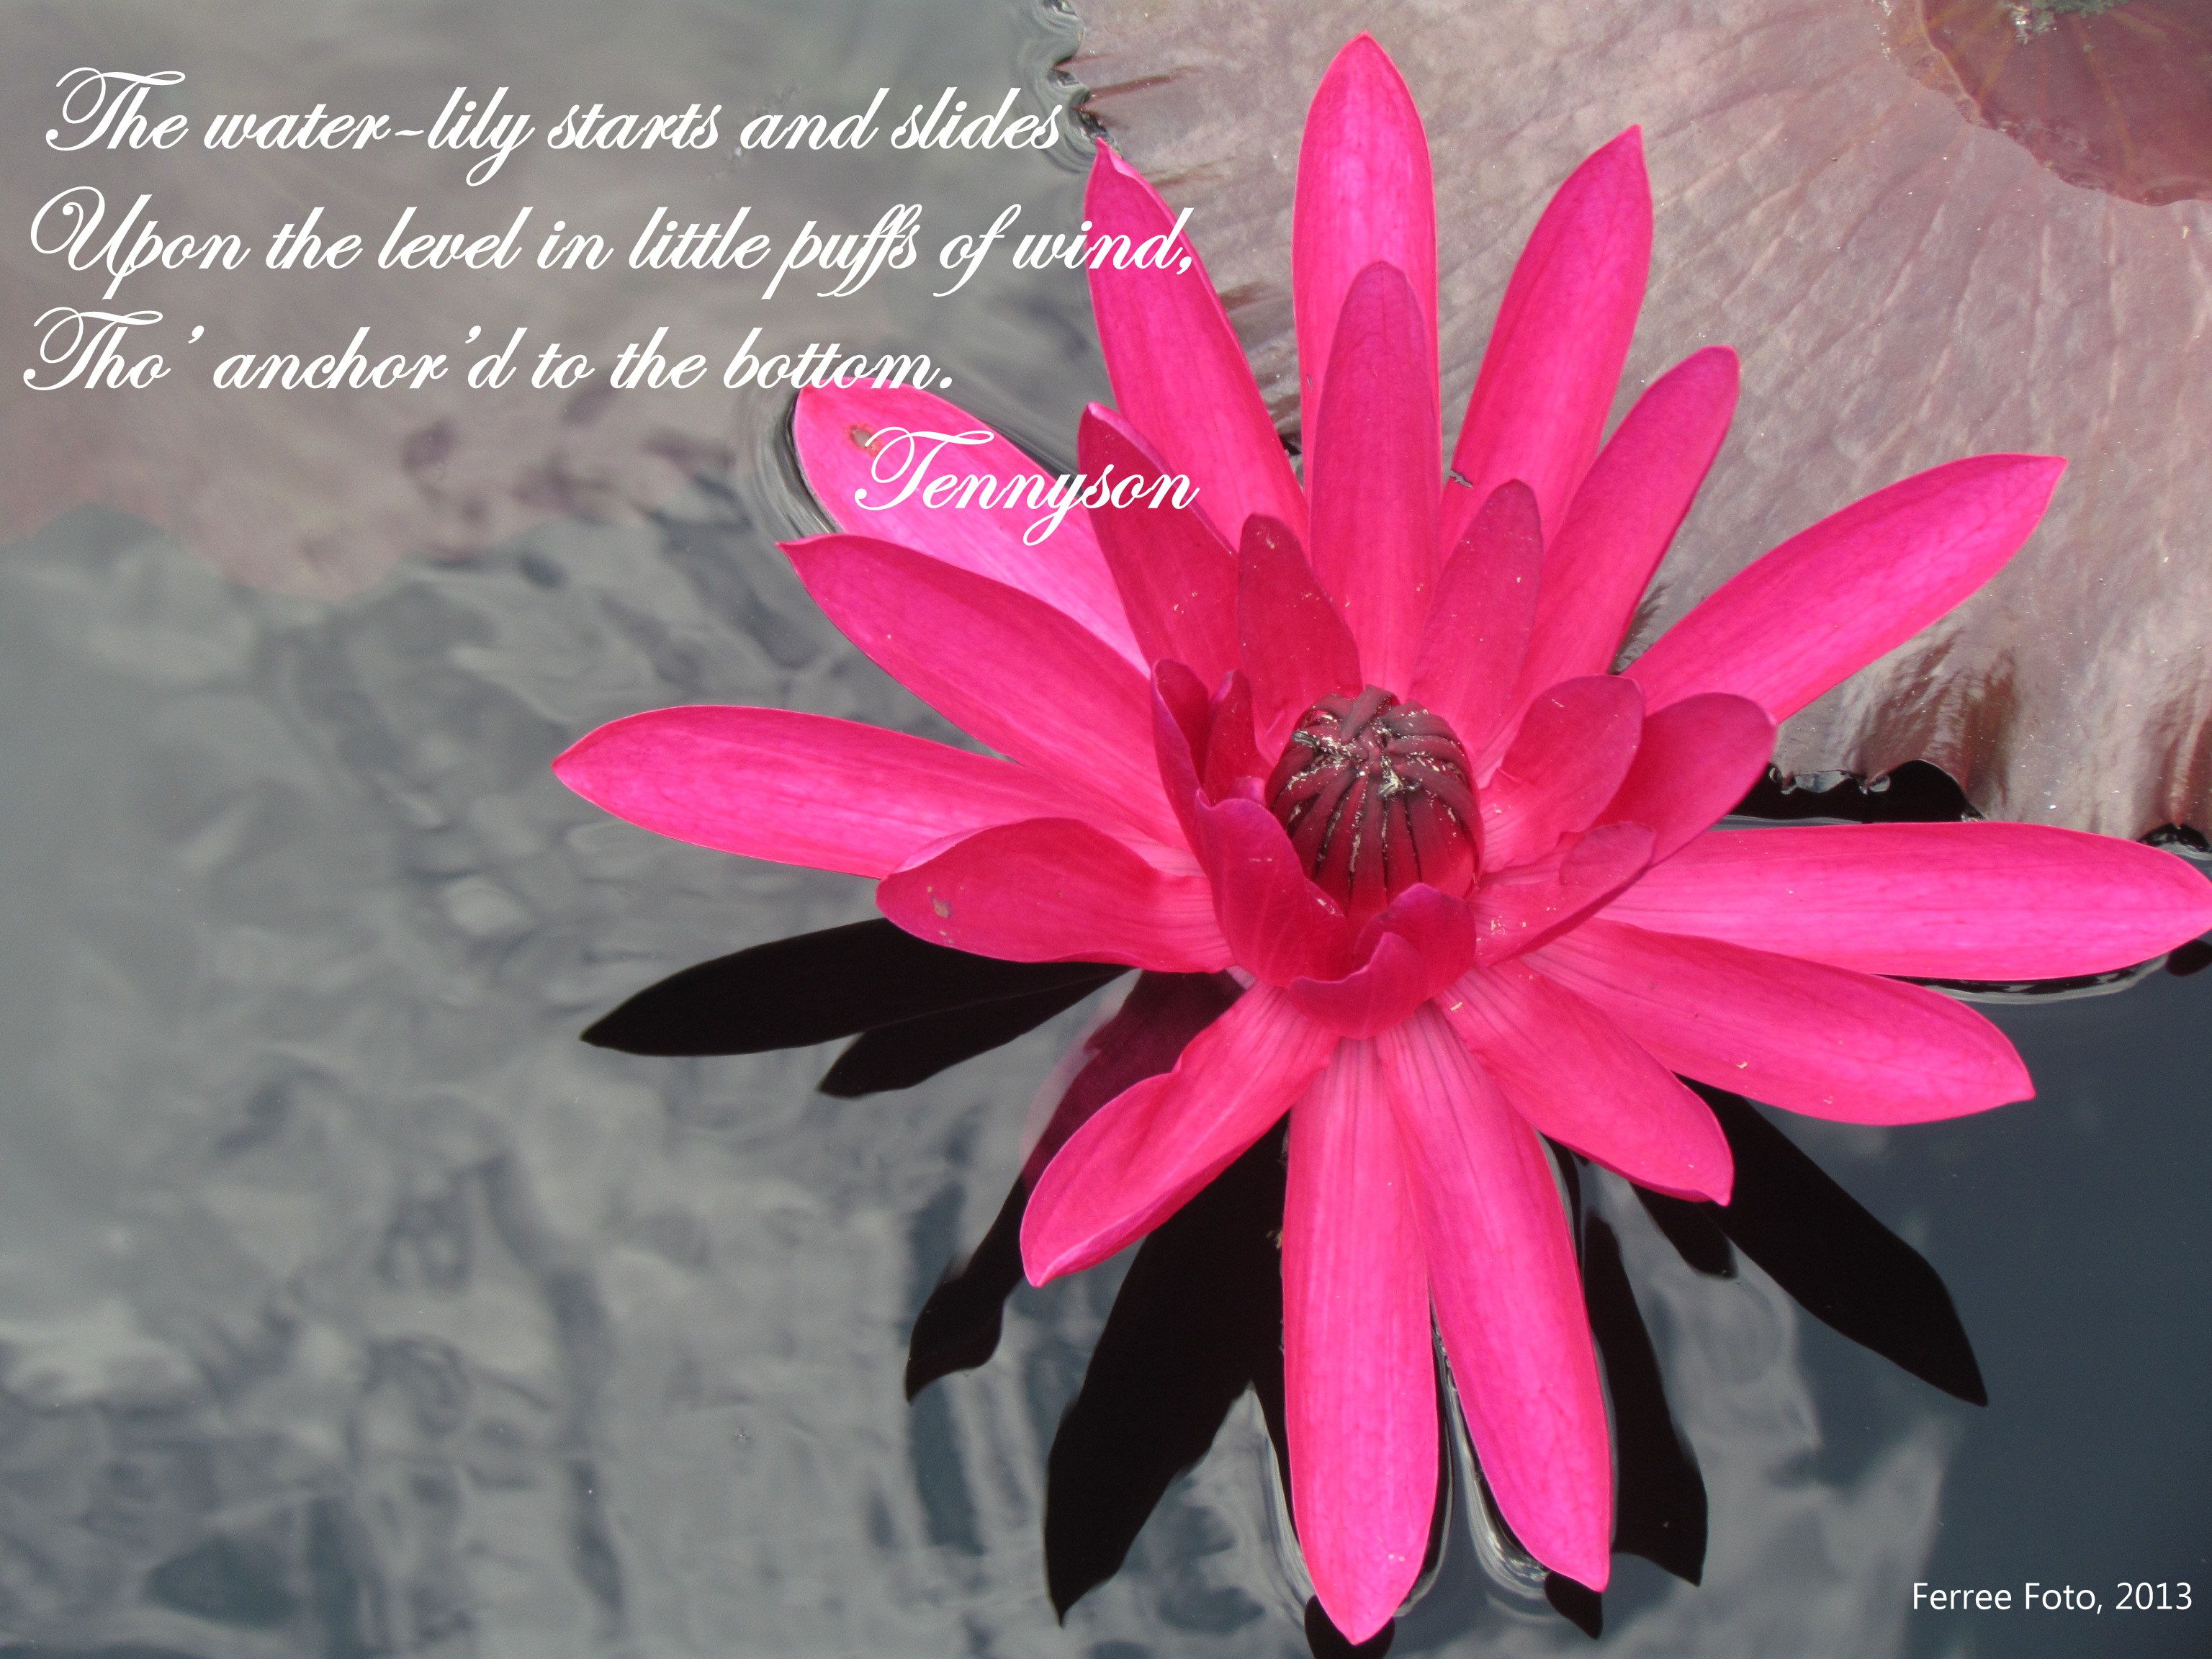 Tennyson's description of a water lily in The Princess. IV